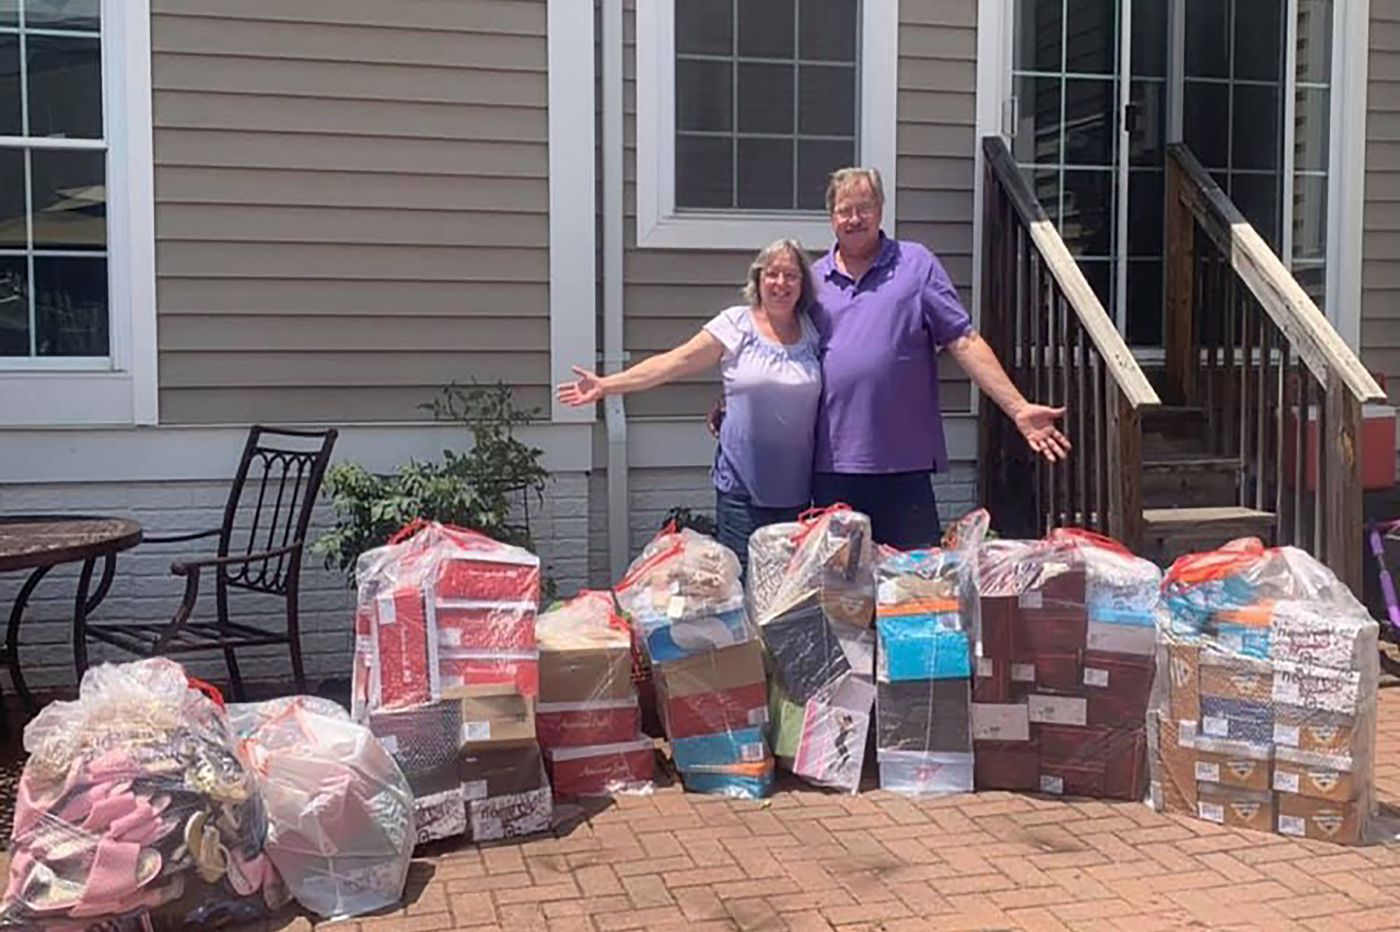 This N.J. couple bought all the shoes in a Payless store - then donated them to charity